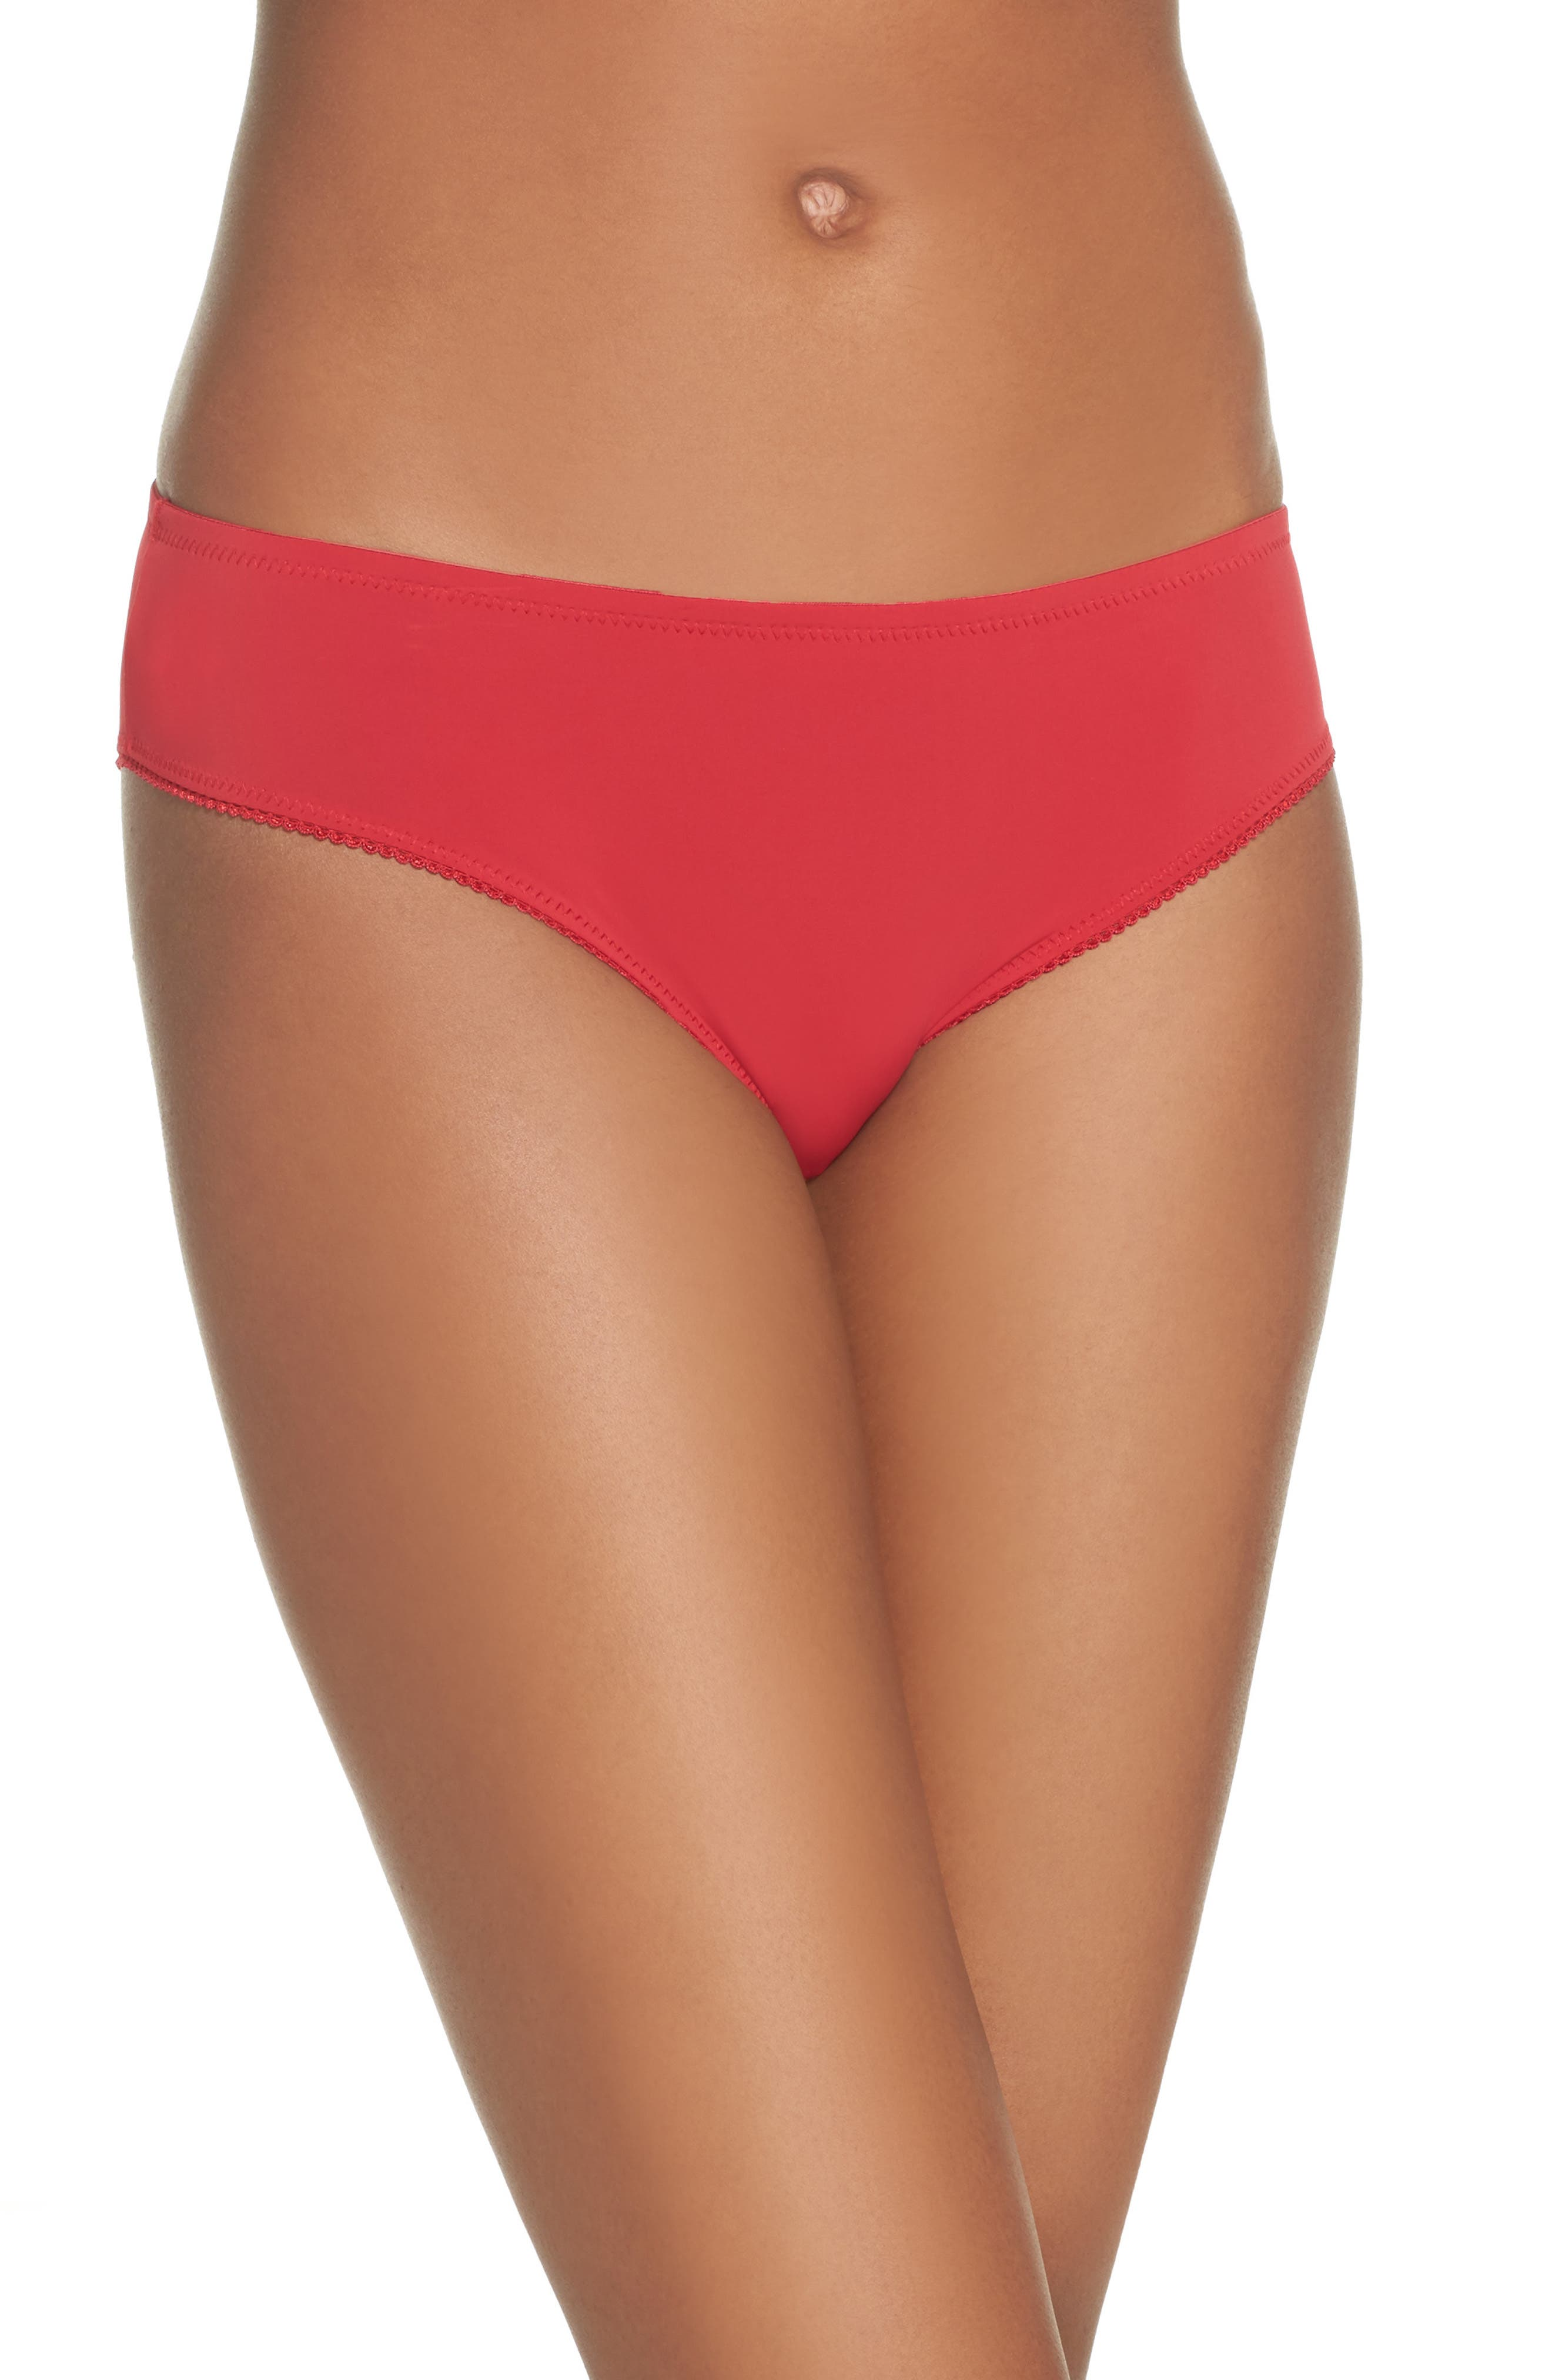 Le Petit Secret Naked Cutout Panties,                         Main,                         color,